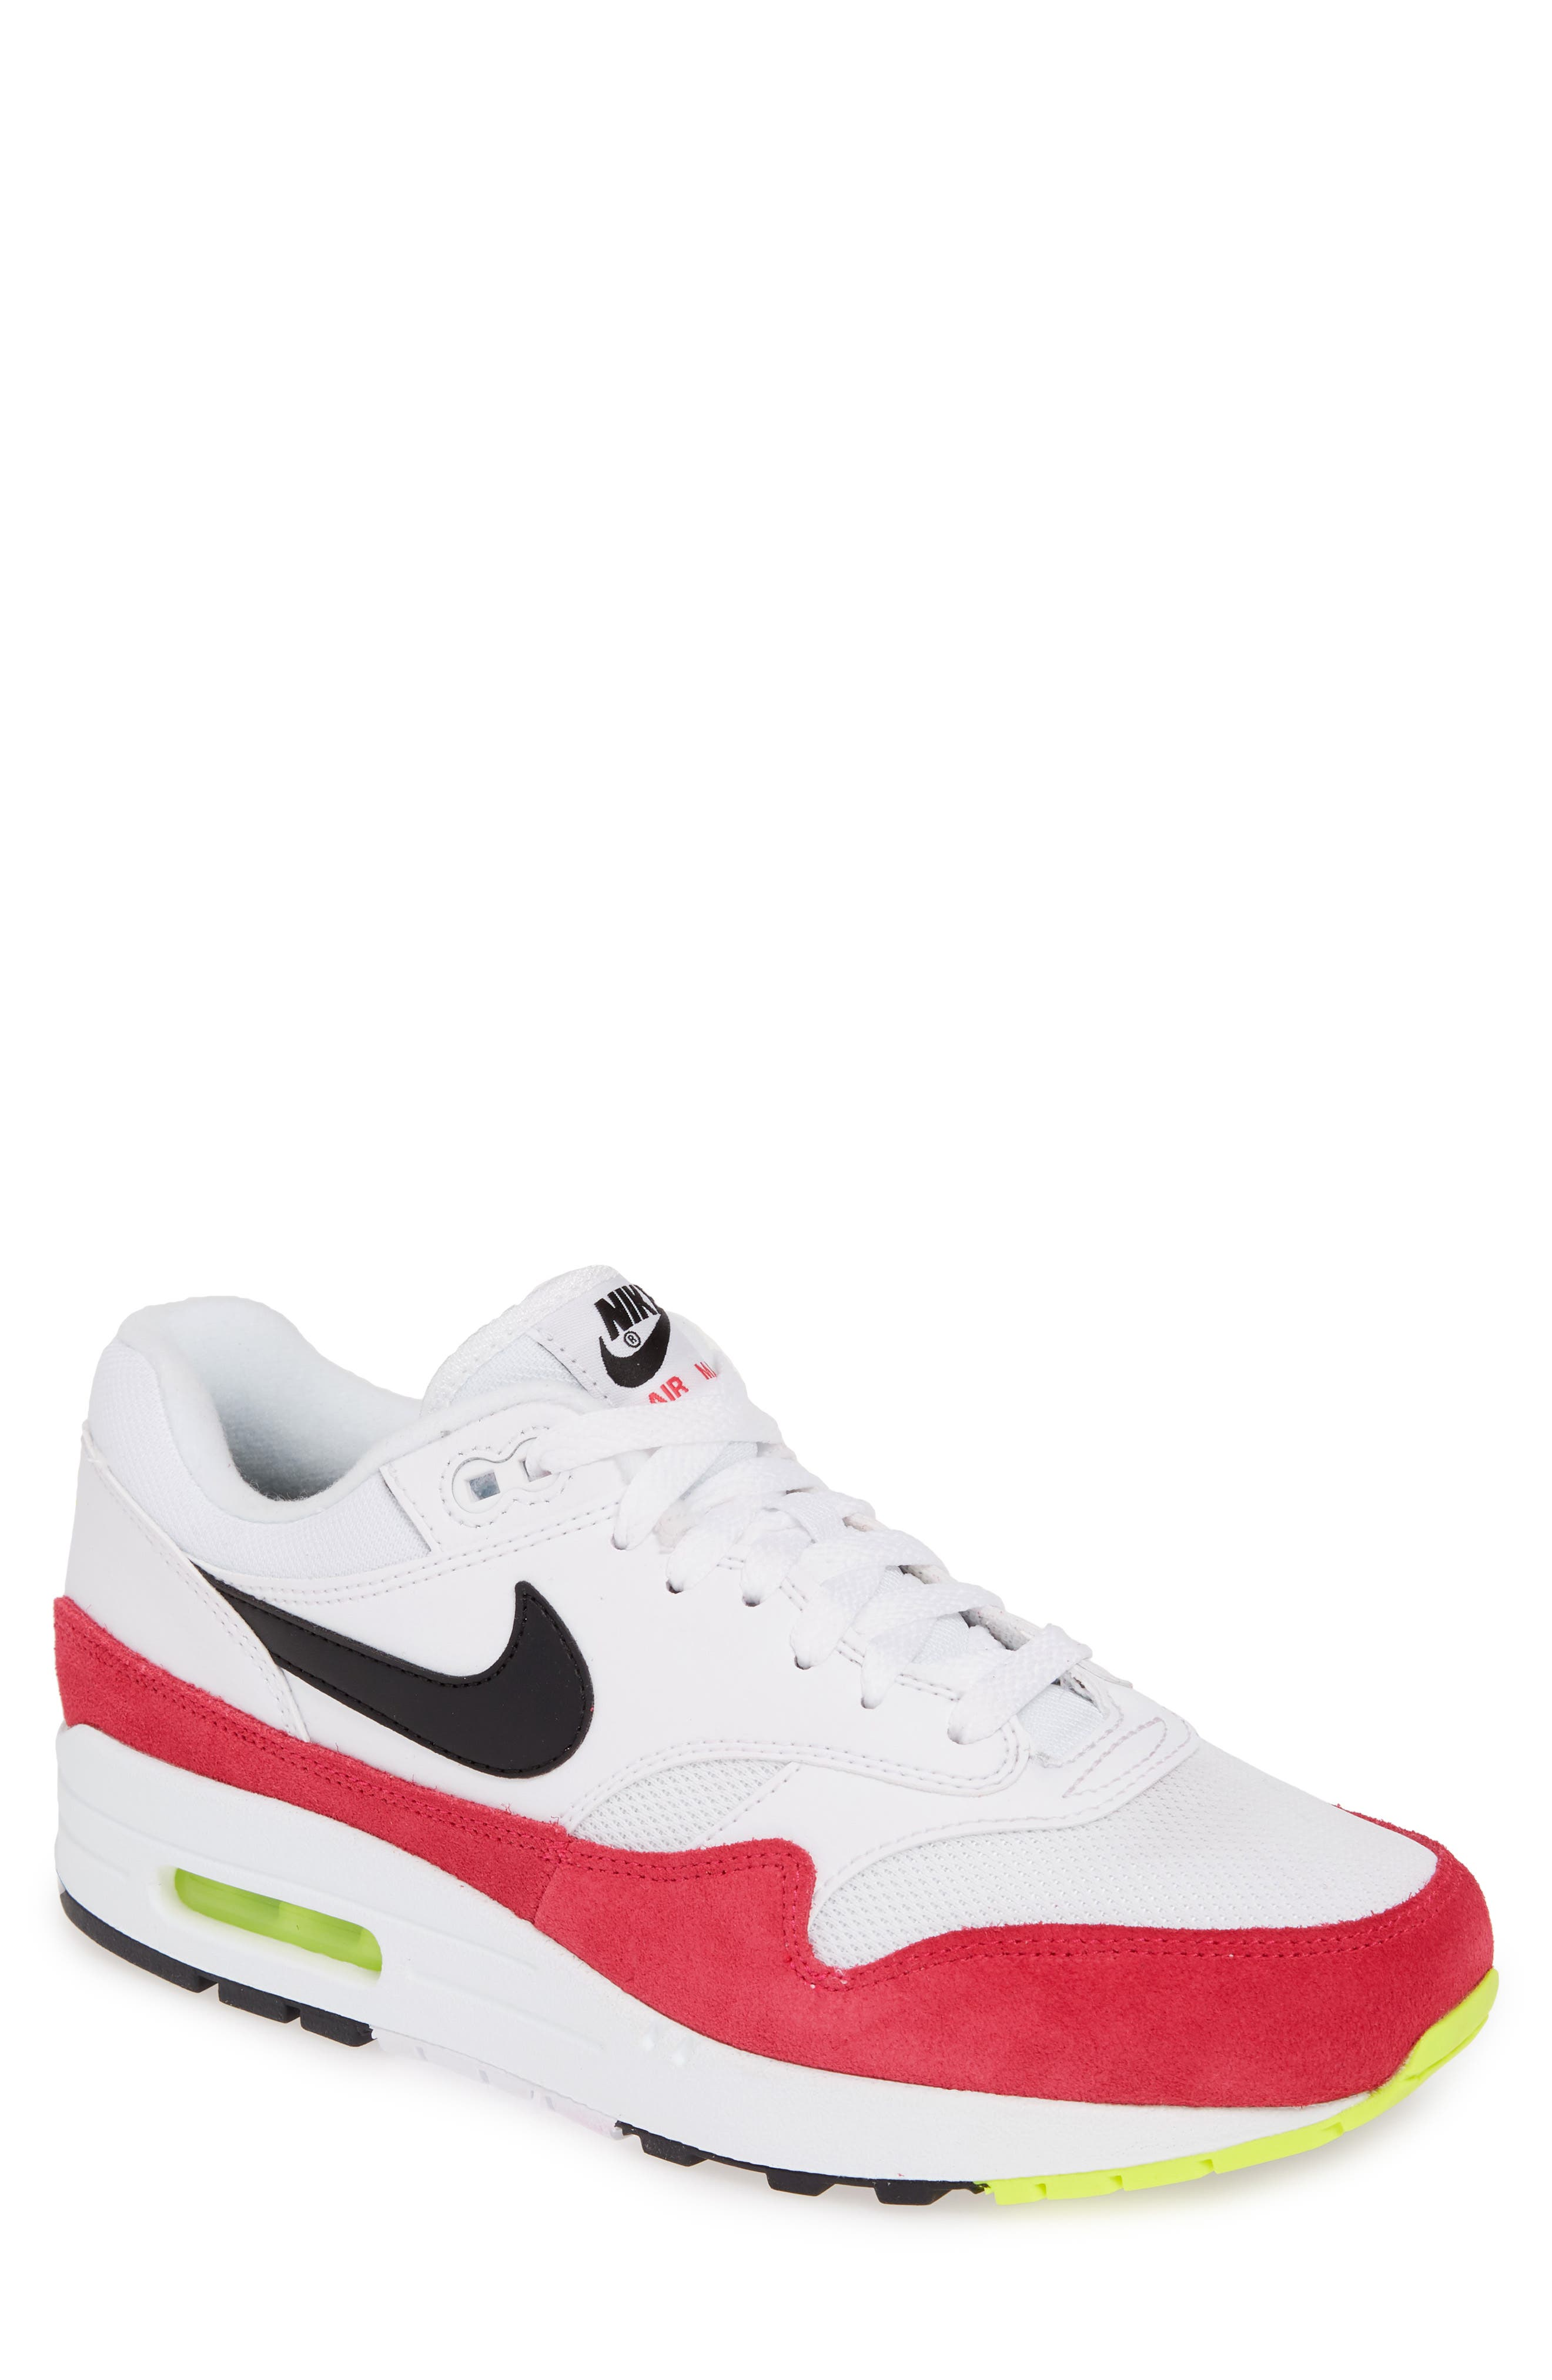 save off 58dbe d6a12 Men s Nike Shoes, Clothing   Accessories   Nordstrom